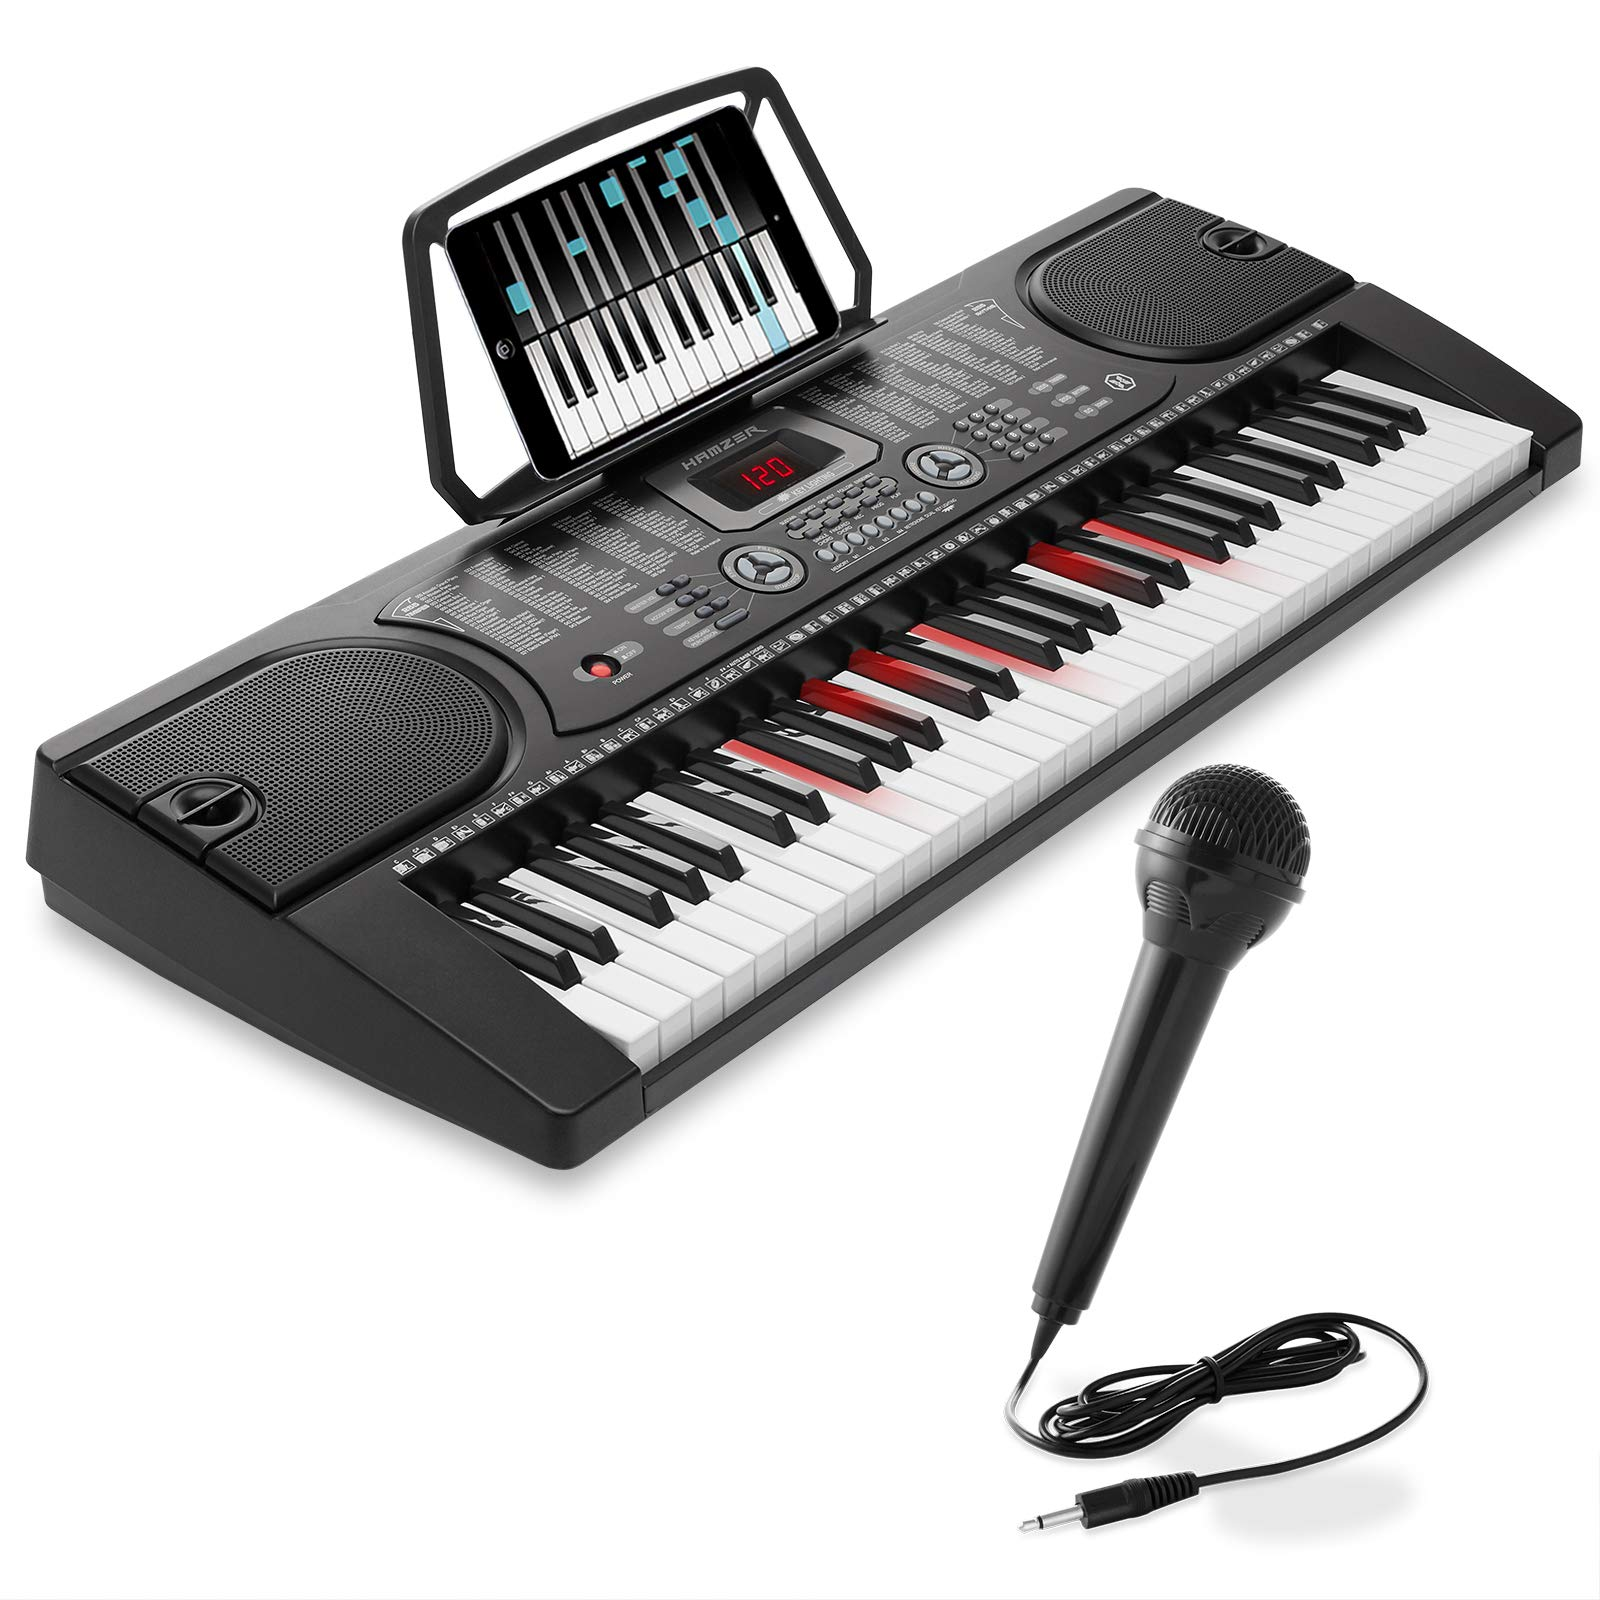 Hamzer 61-Key Electronic Keyboard Portable Digital Music Piano with Lighted Keys, Microphone & Sticker Set by Hamzer